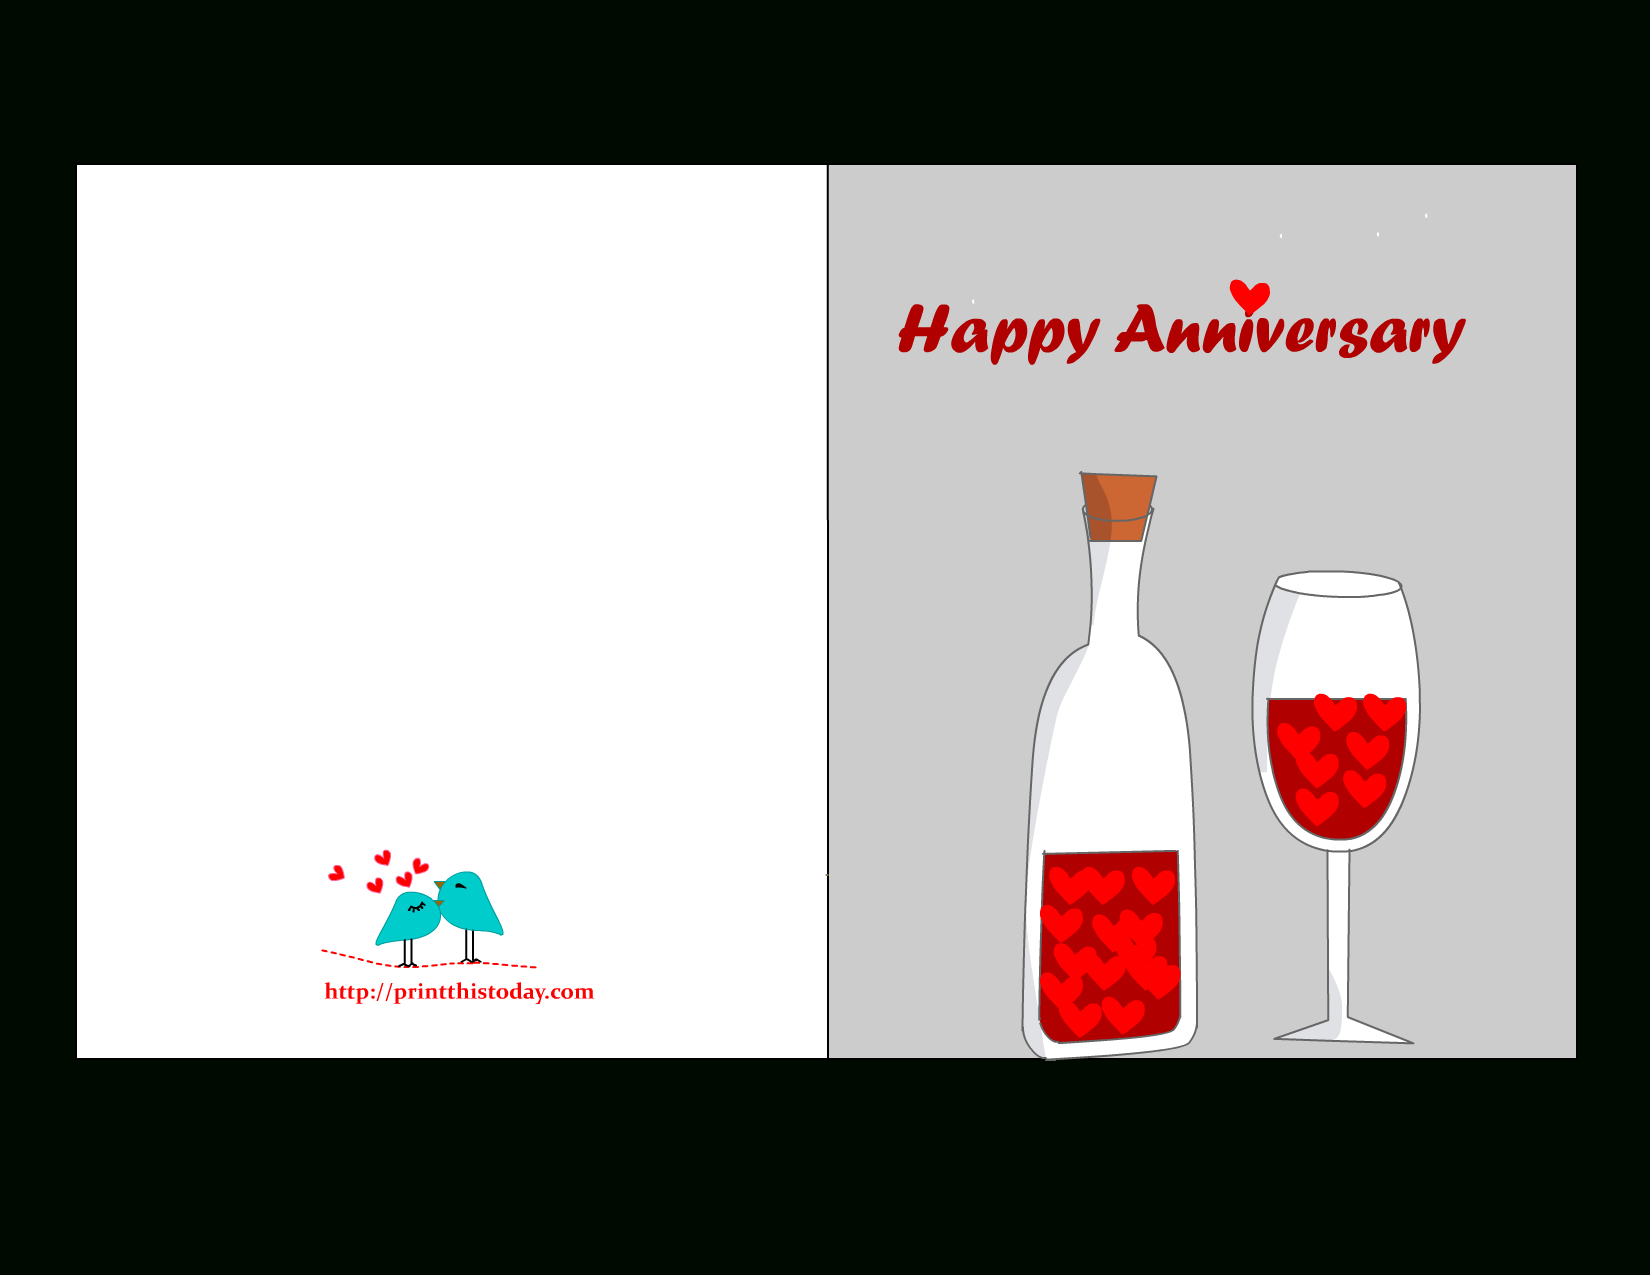 Free Printable Anniversary Cards - Free Printable Anniversary Cards